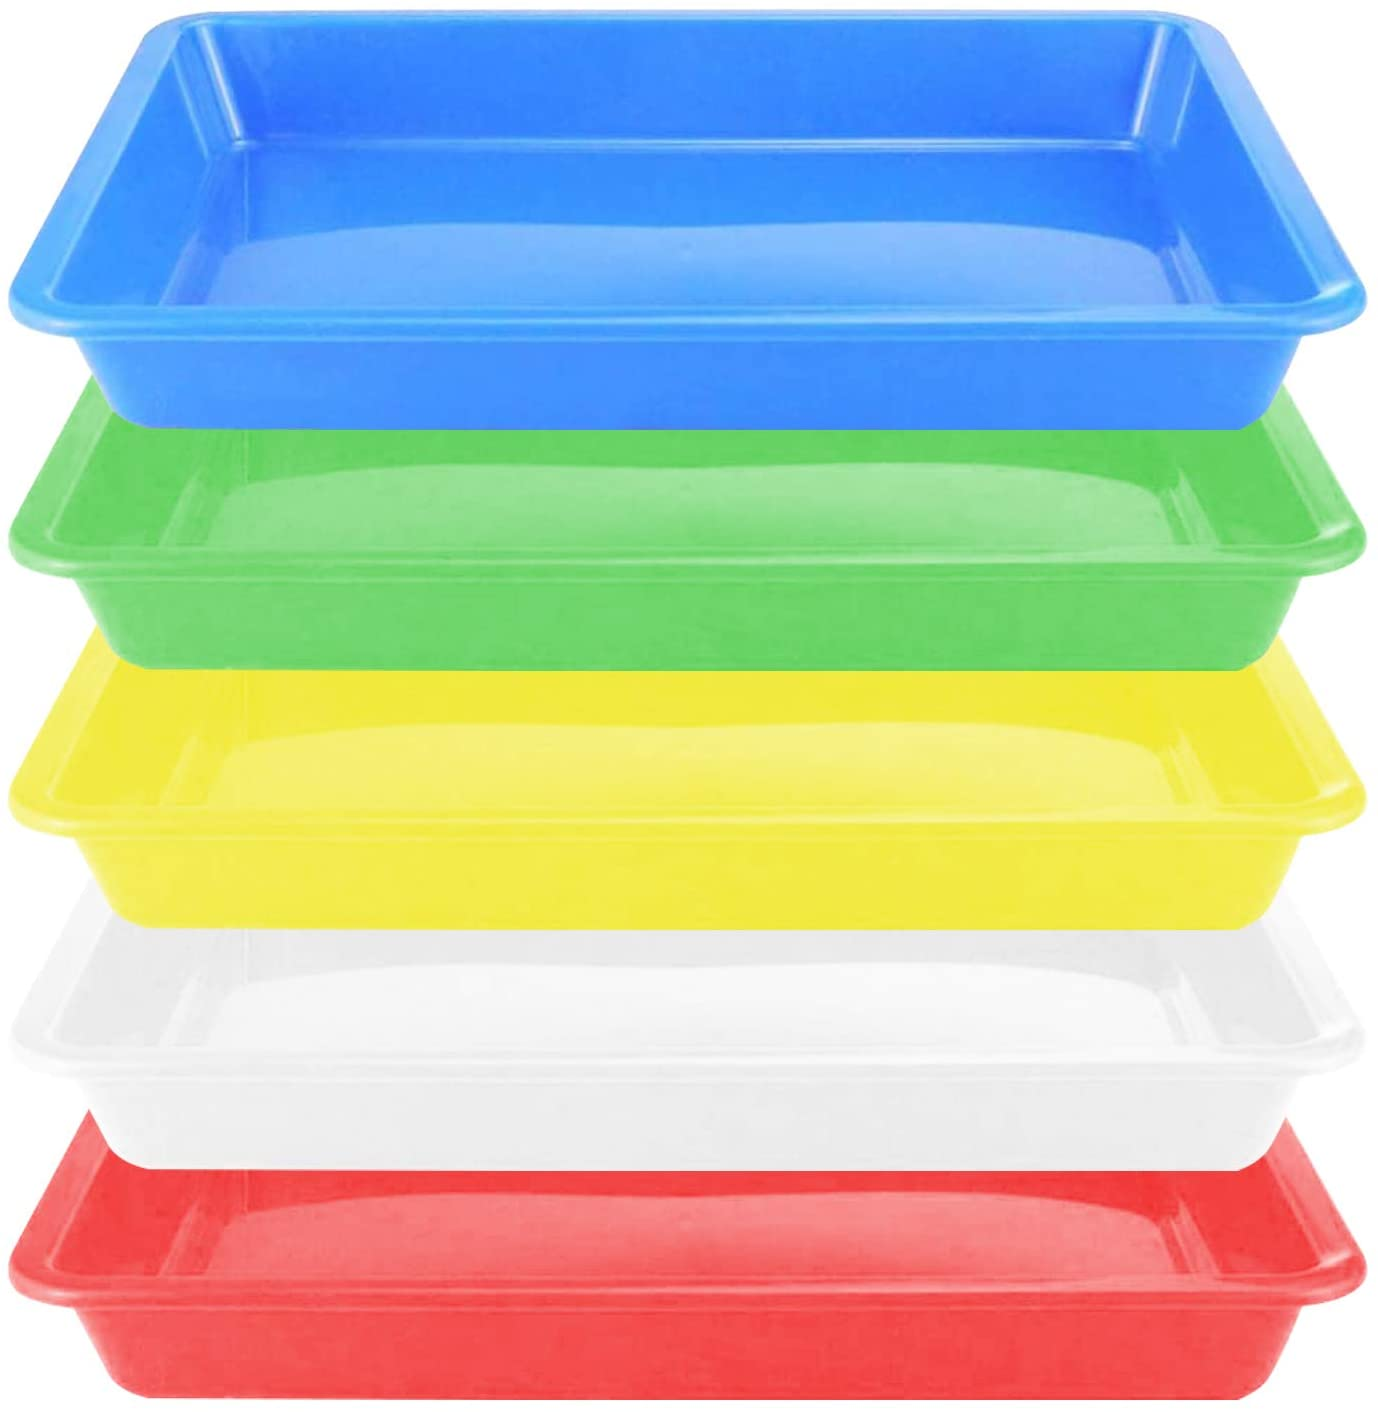 Plastic Art Trays,5 Pieces Stackable Activity Tray Crafts Organizer Tray Serving Tray Jewelry Tray for DIY Projects, Painting, Beads, Organizing Supply,5 Color (11 x 8.3 x 1.2 inch)